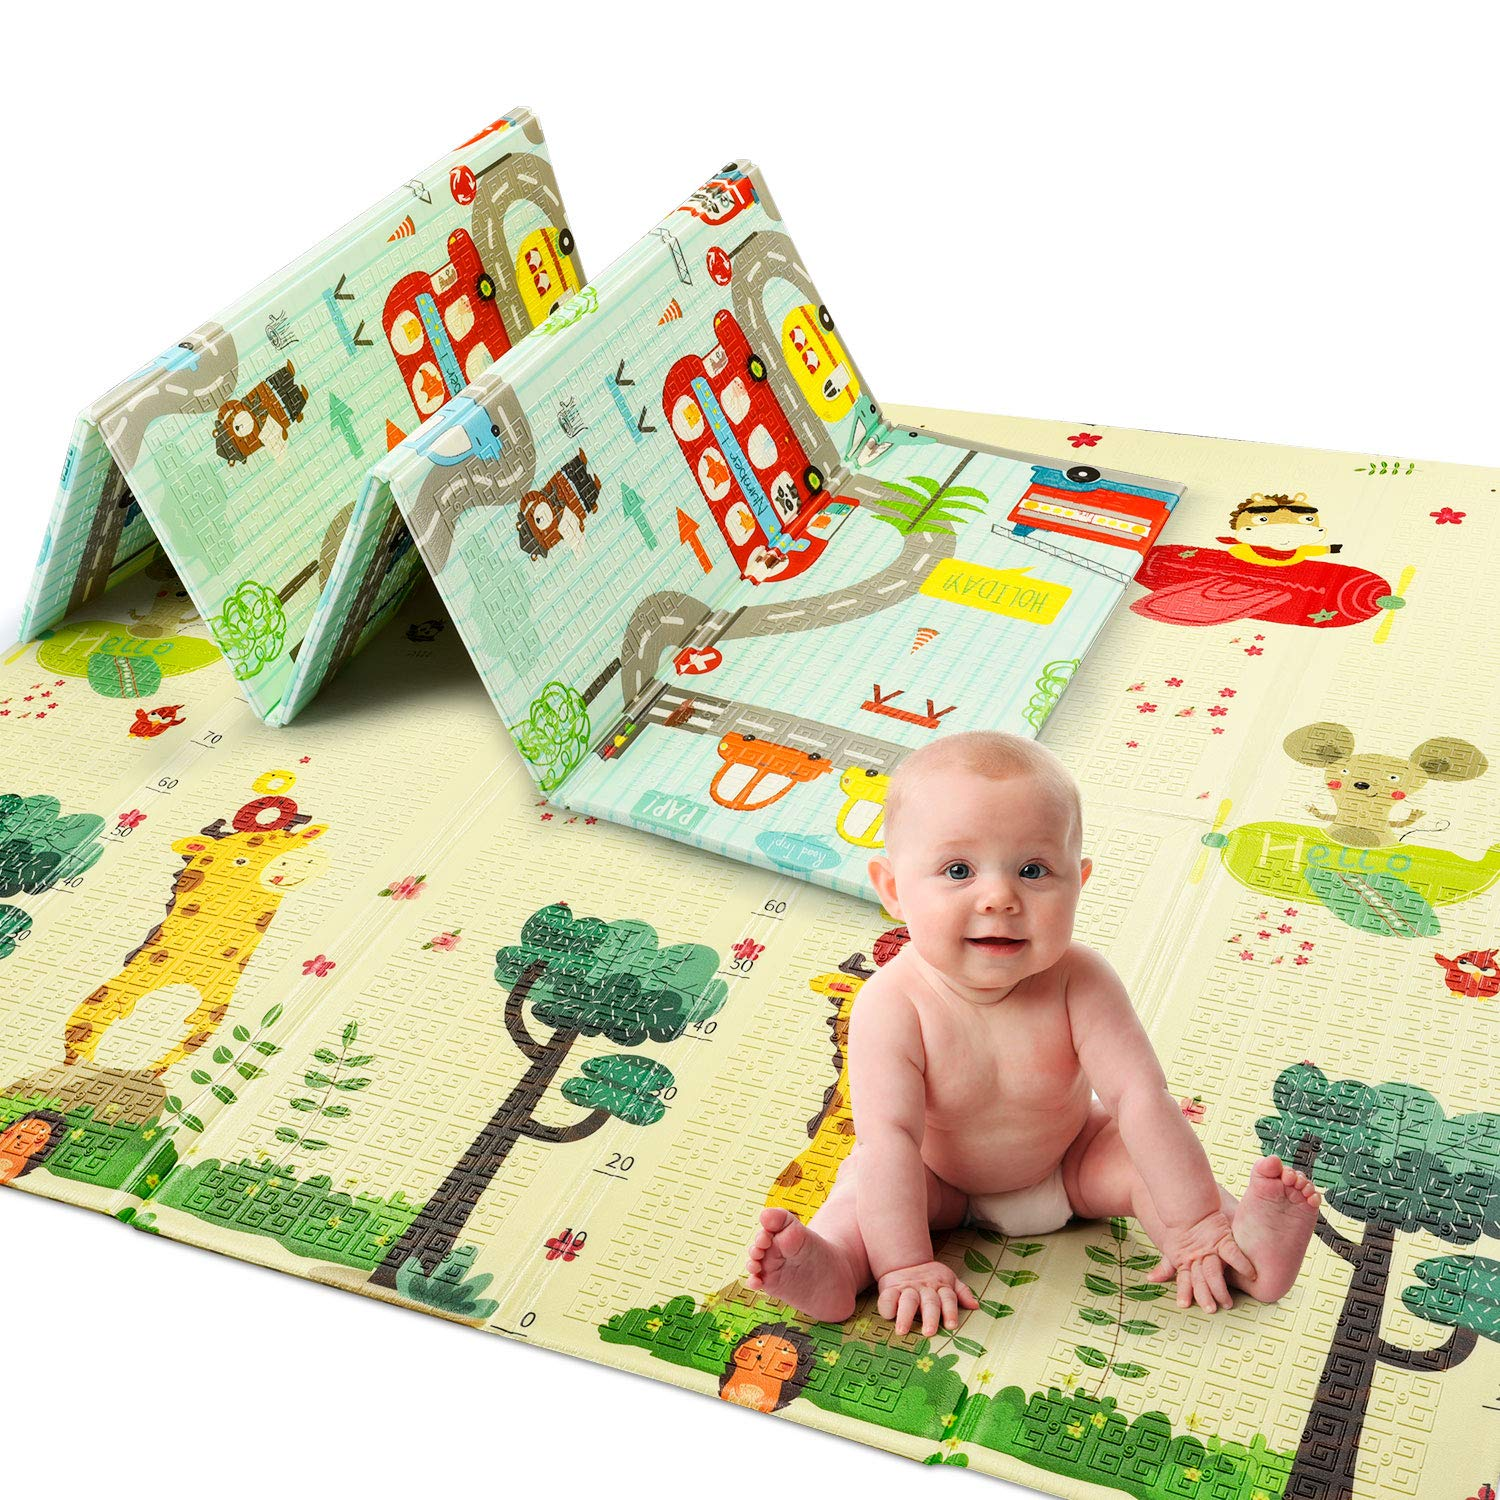 6 * 6.5 feet, Map//Fish UArtlines Folding Play Mat Extra Large Foam Thick Baby Crawling Mat Kids Playmat Reversible Portable Waterproof Non Toxic for Babies Infants and Toddlers